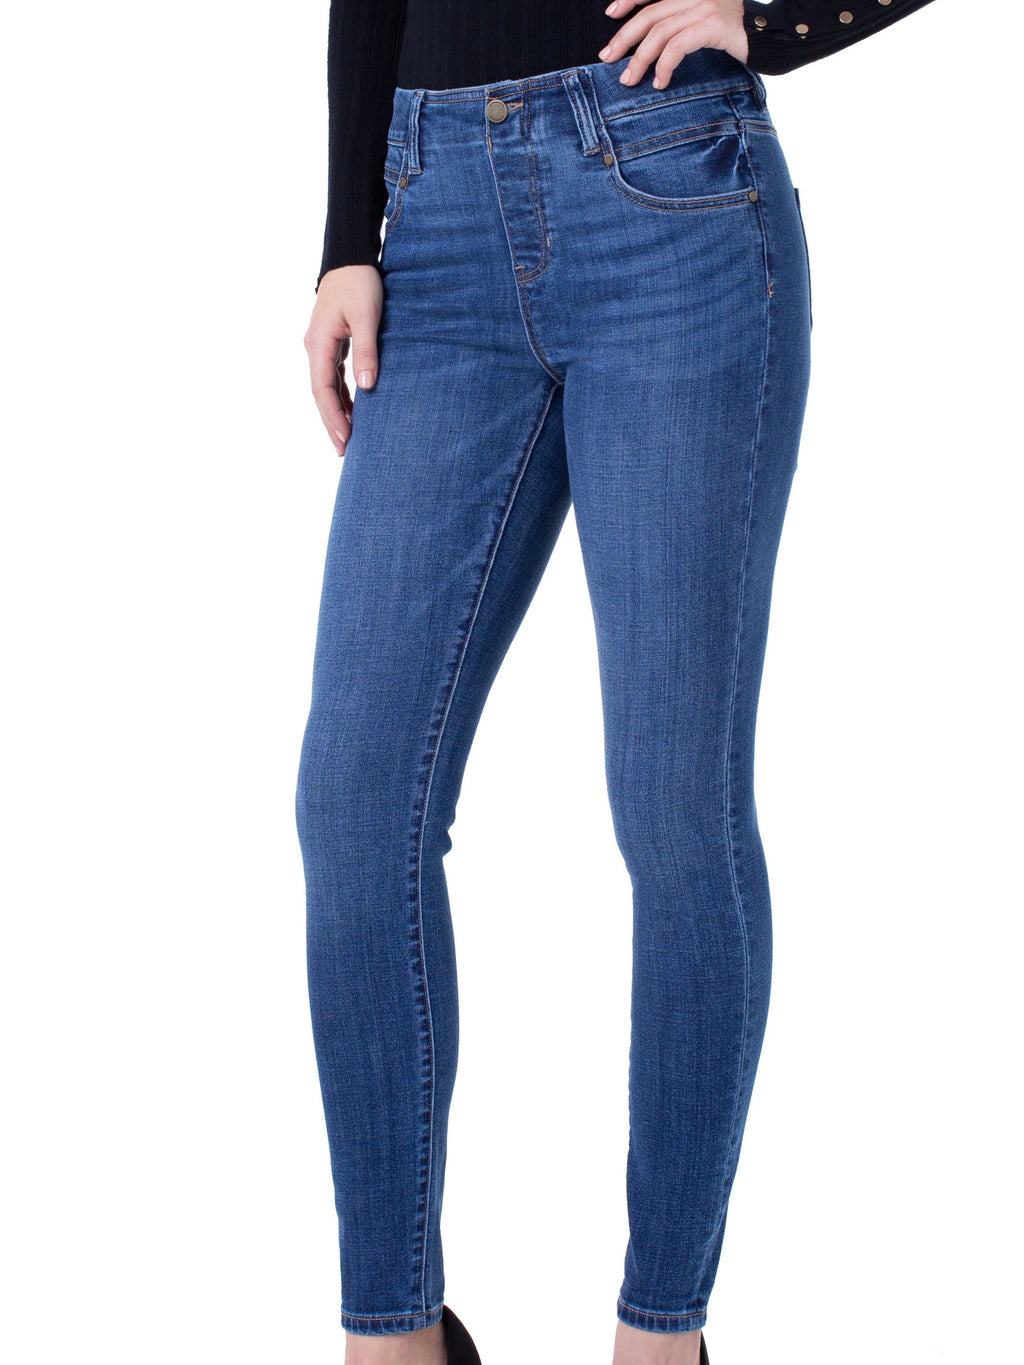 Liverpool Gia Glider Skinny Jean